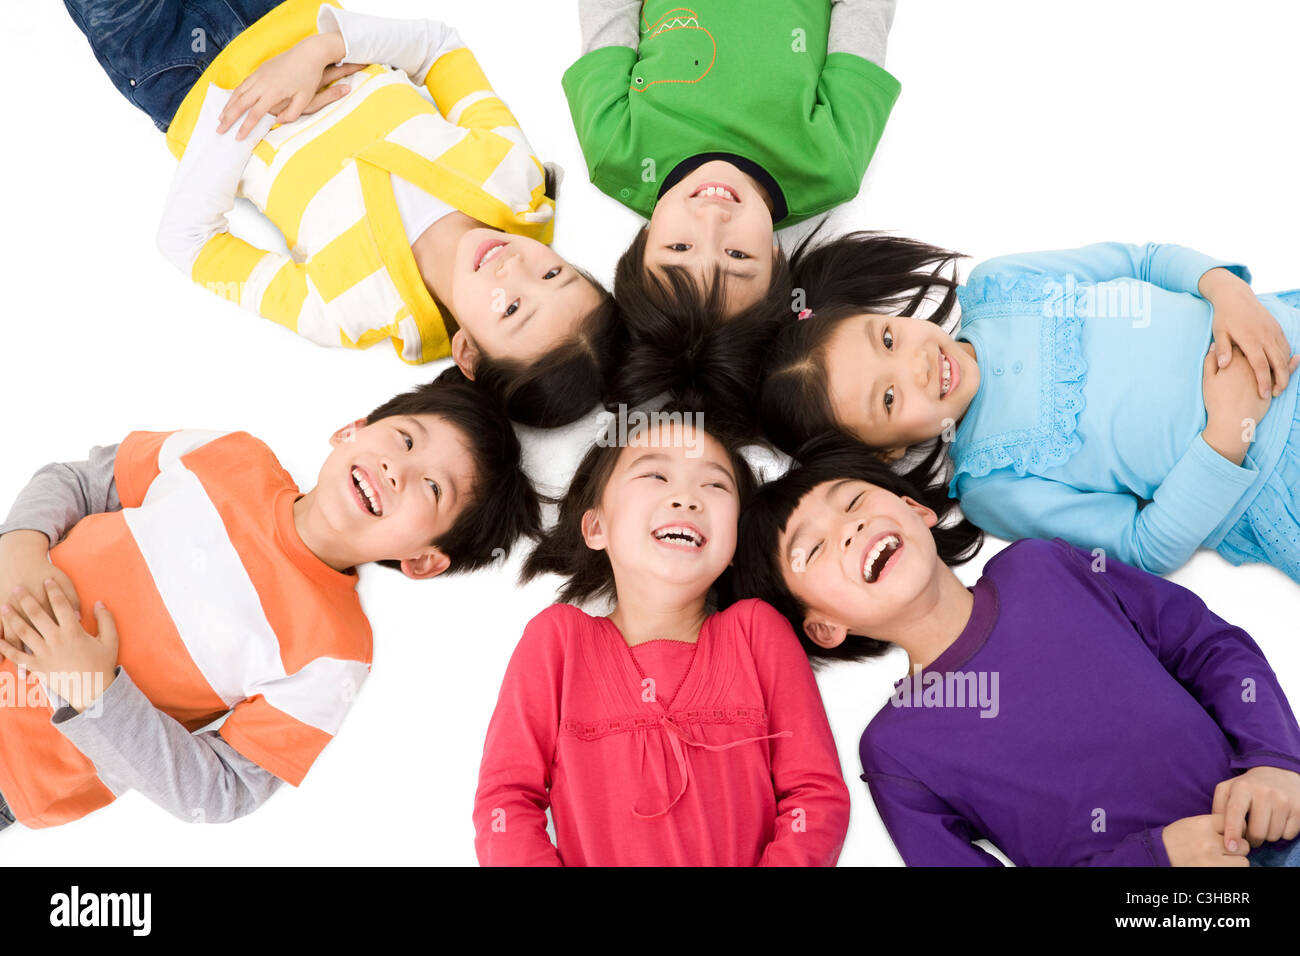 A group of children lying in a circle - Stock Image